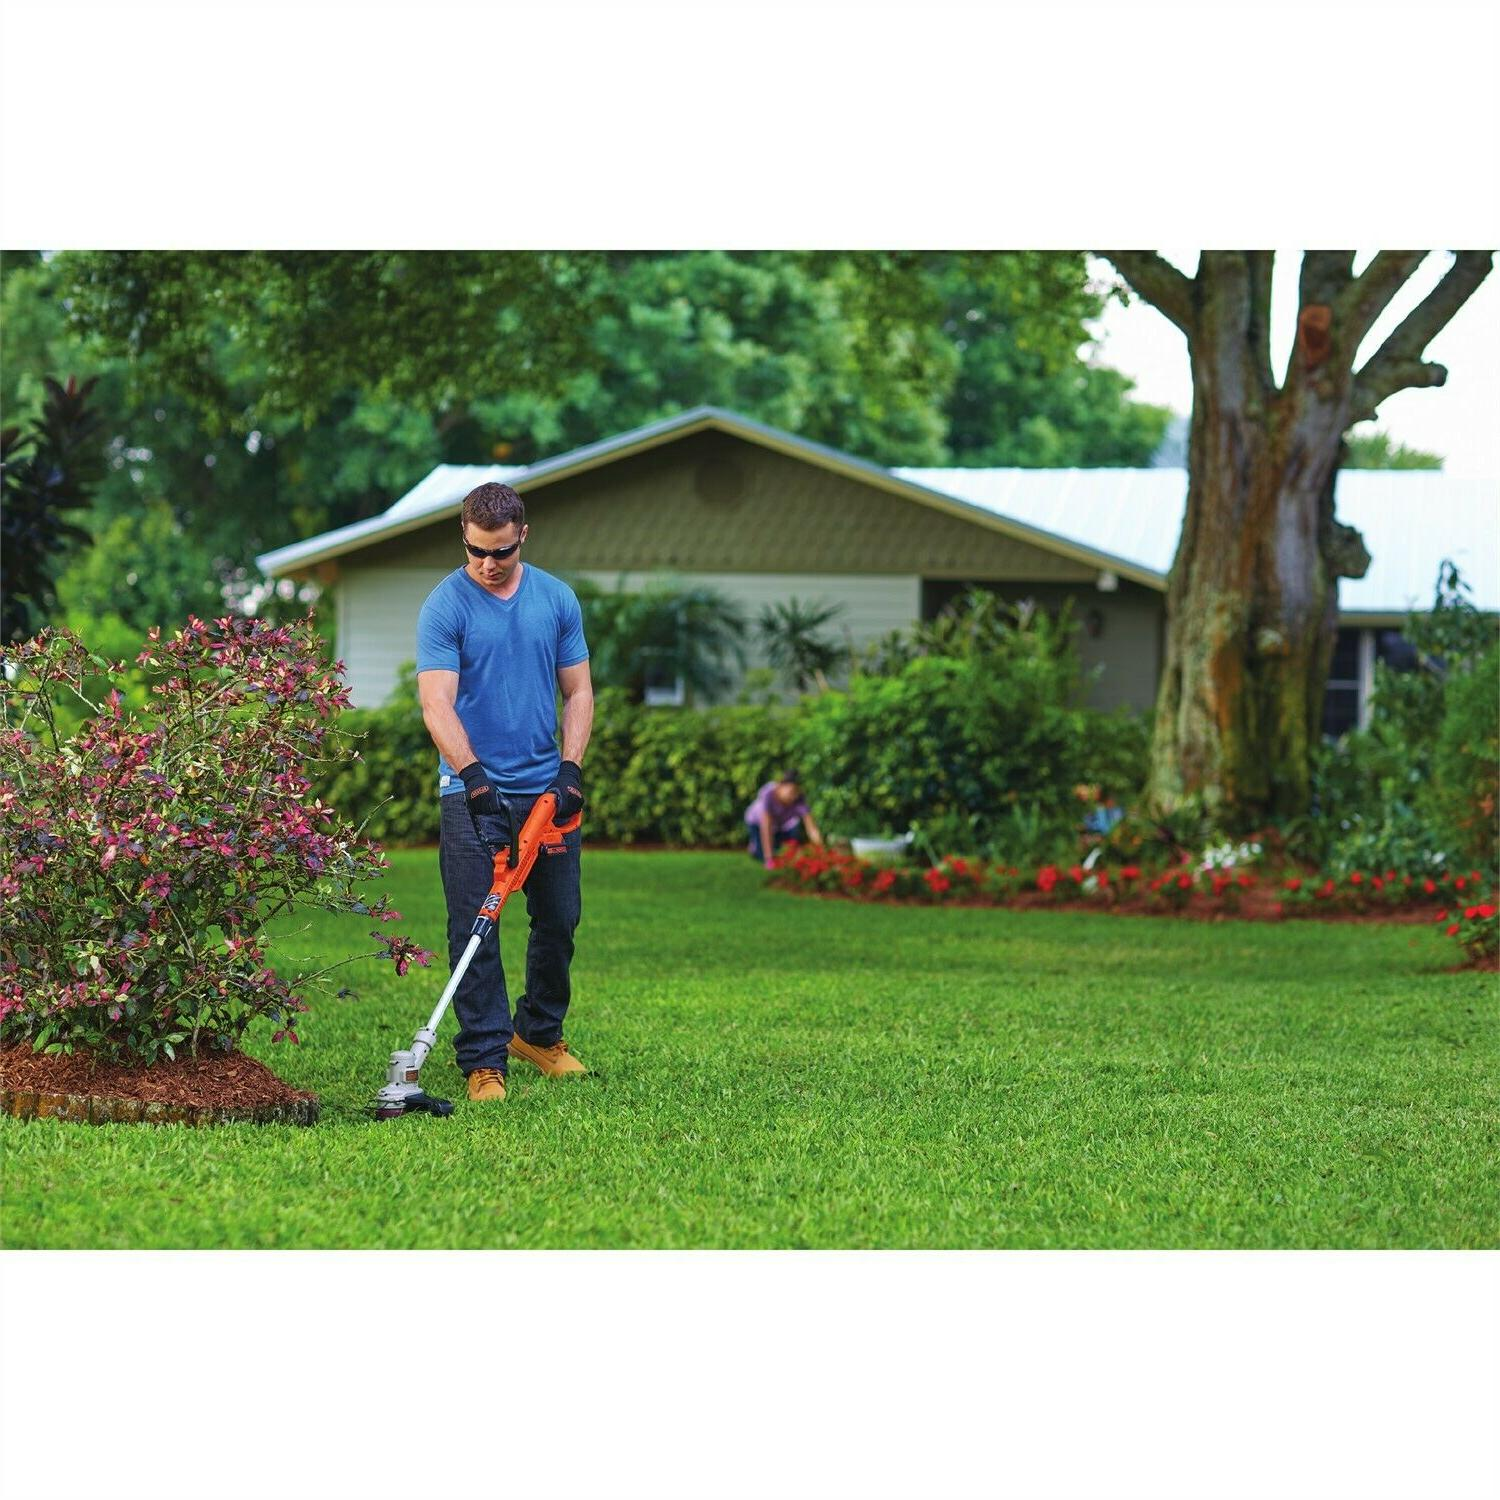 Black Weed Eater Grass String Trimmer Lawn New